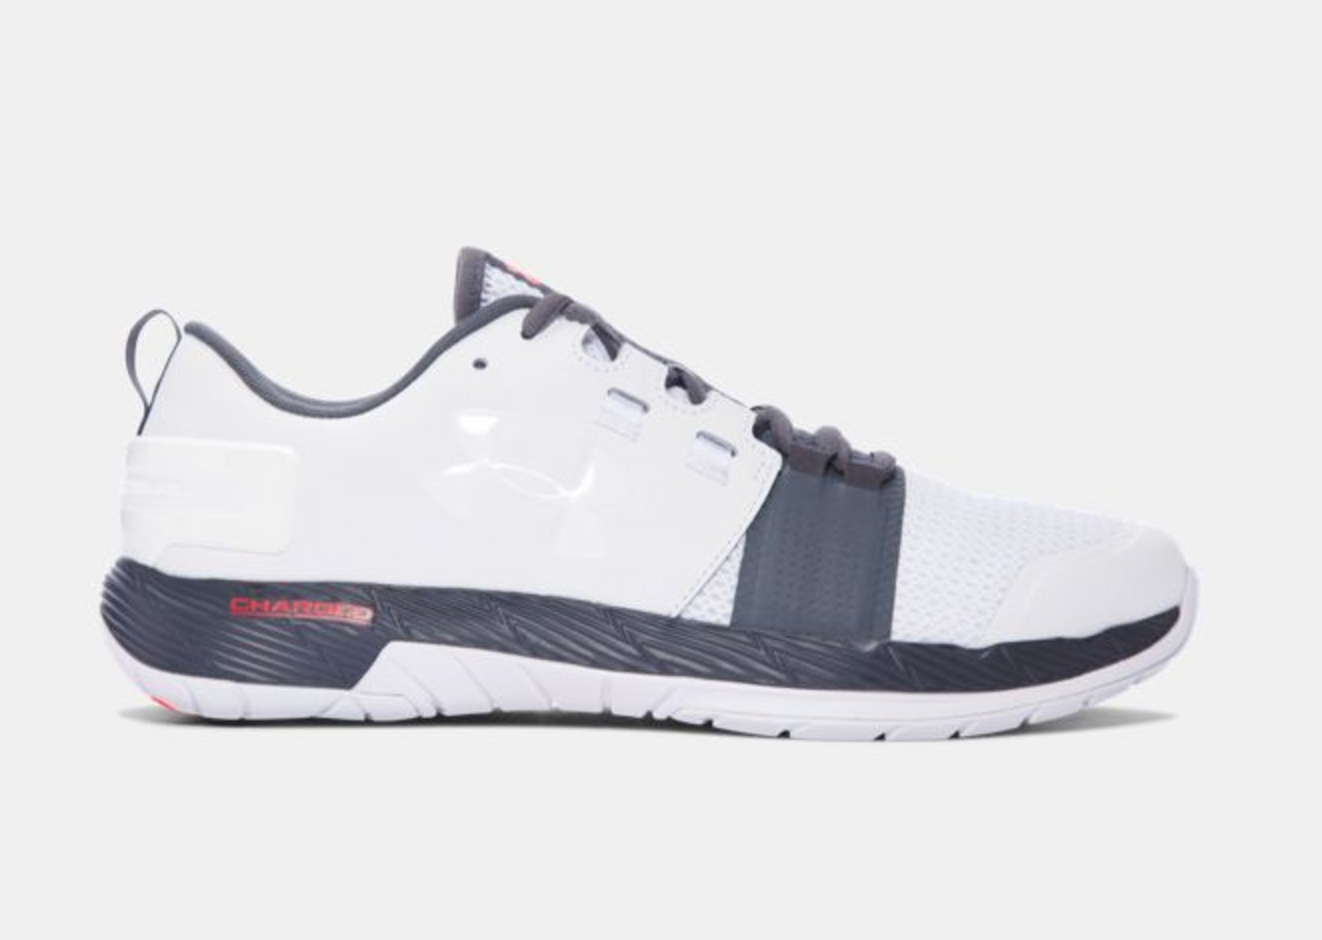 finest selection 8fa33 8d2f4 The UA Commit Trainer is Available Now in Six Colorways ...